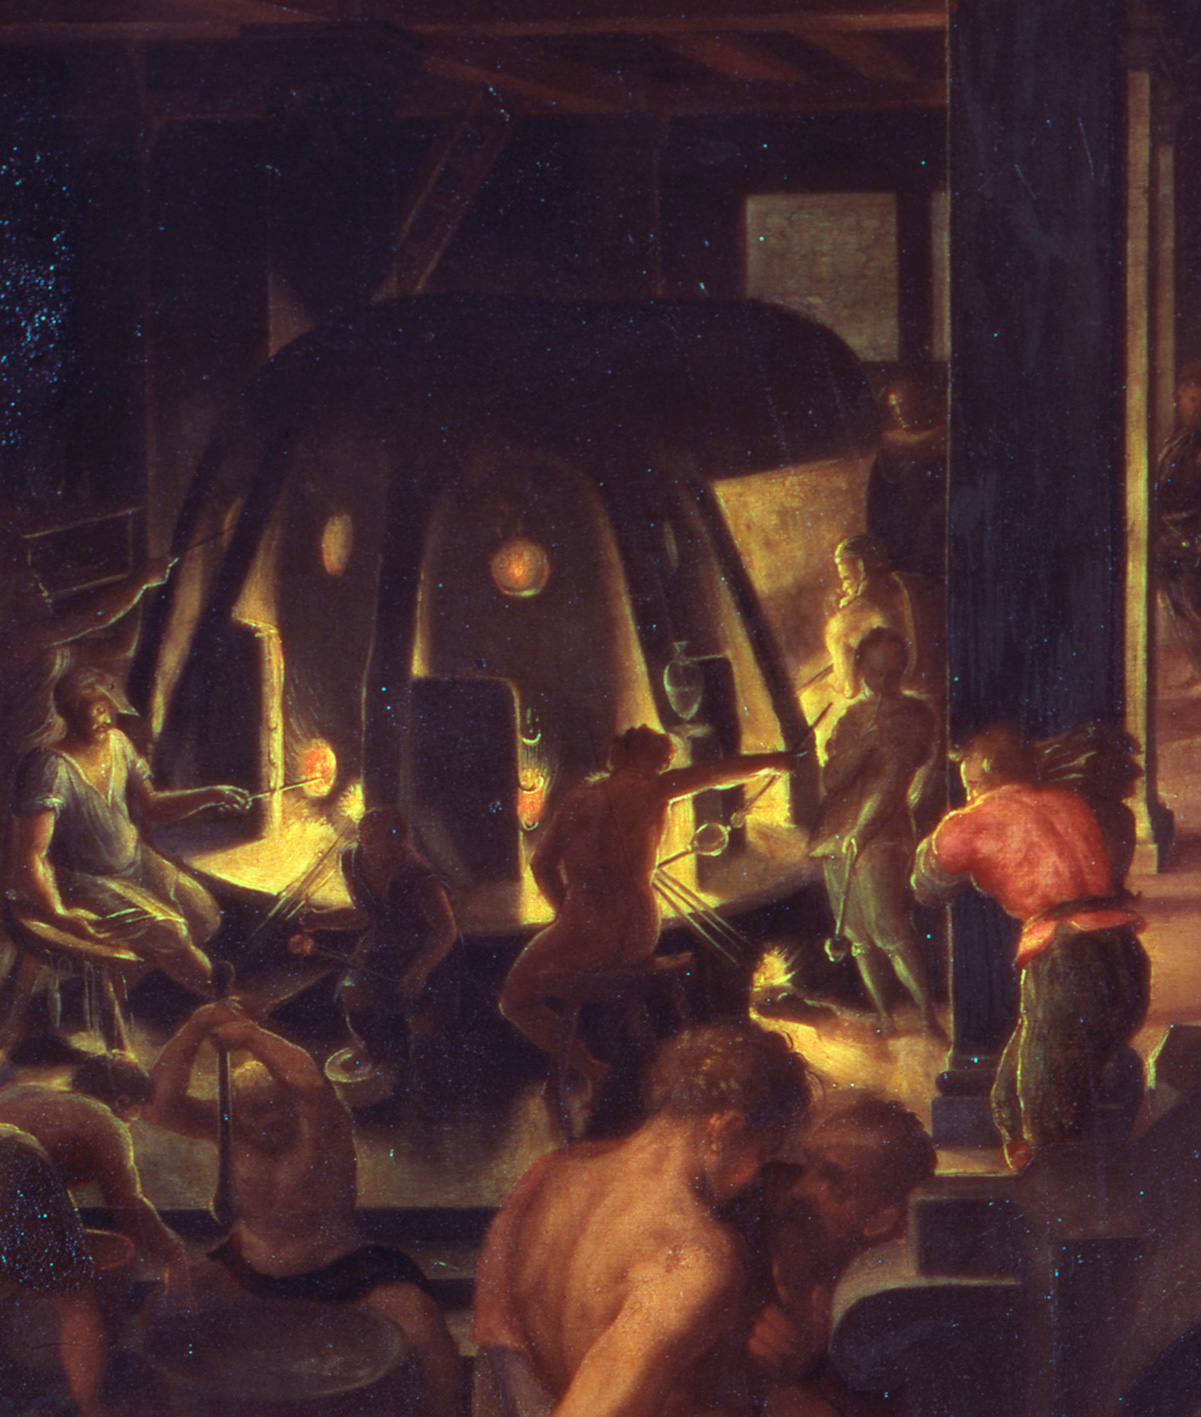 FIG. 40. The Medici Glass Workshop (detail). Giovanni Maria Butteri (Italian, 1540–about 1606), 1570. Palazzo Vecchio, Studiolo of Francesco I. Photo: Scala / Art Resource, NY.